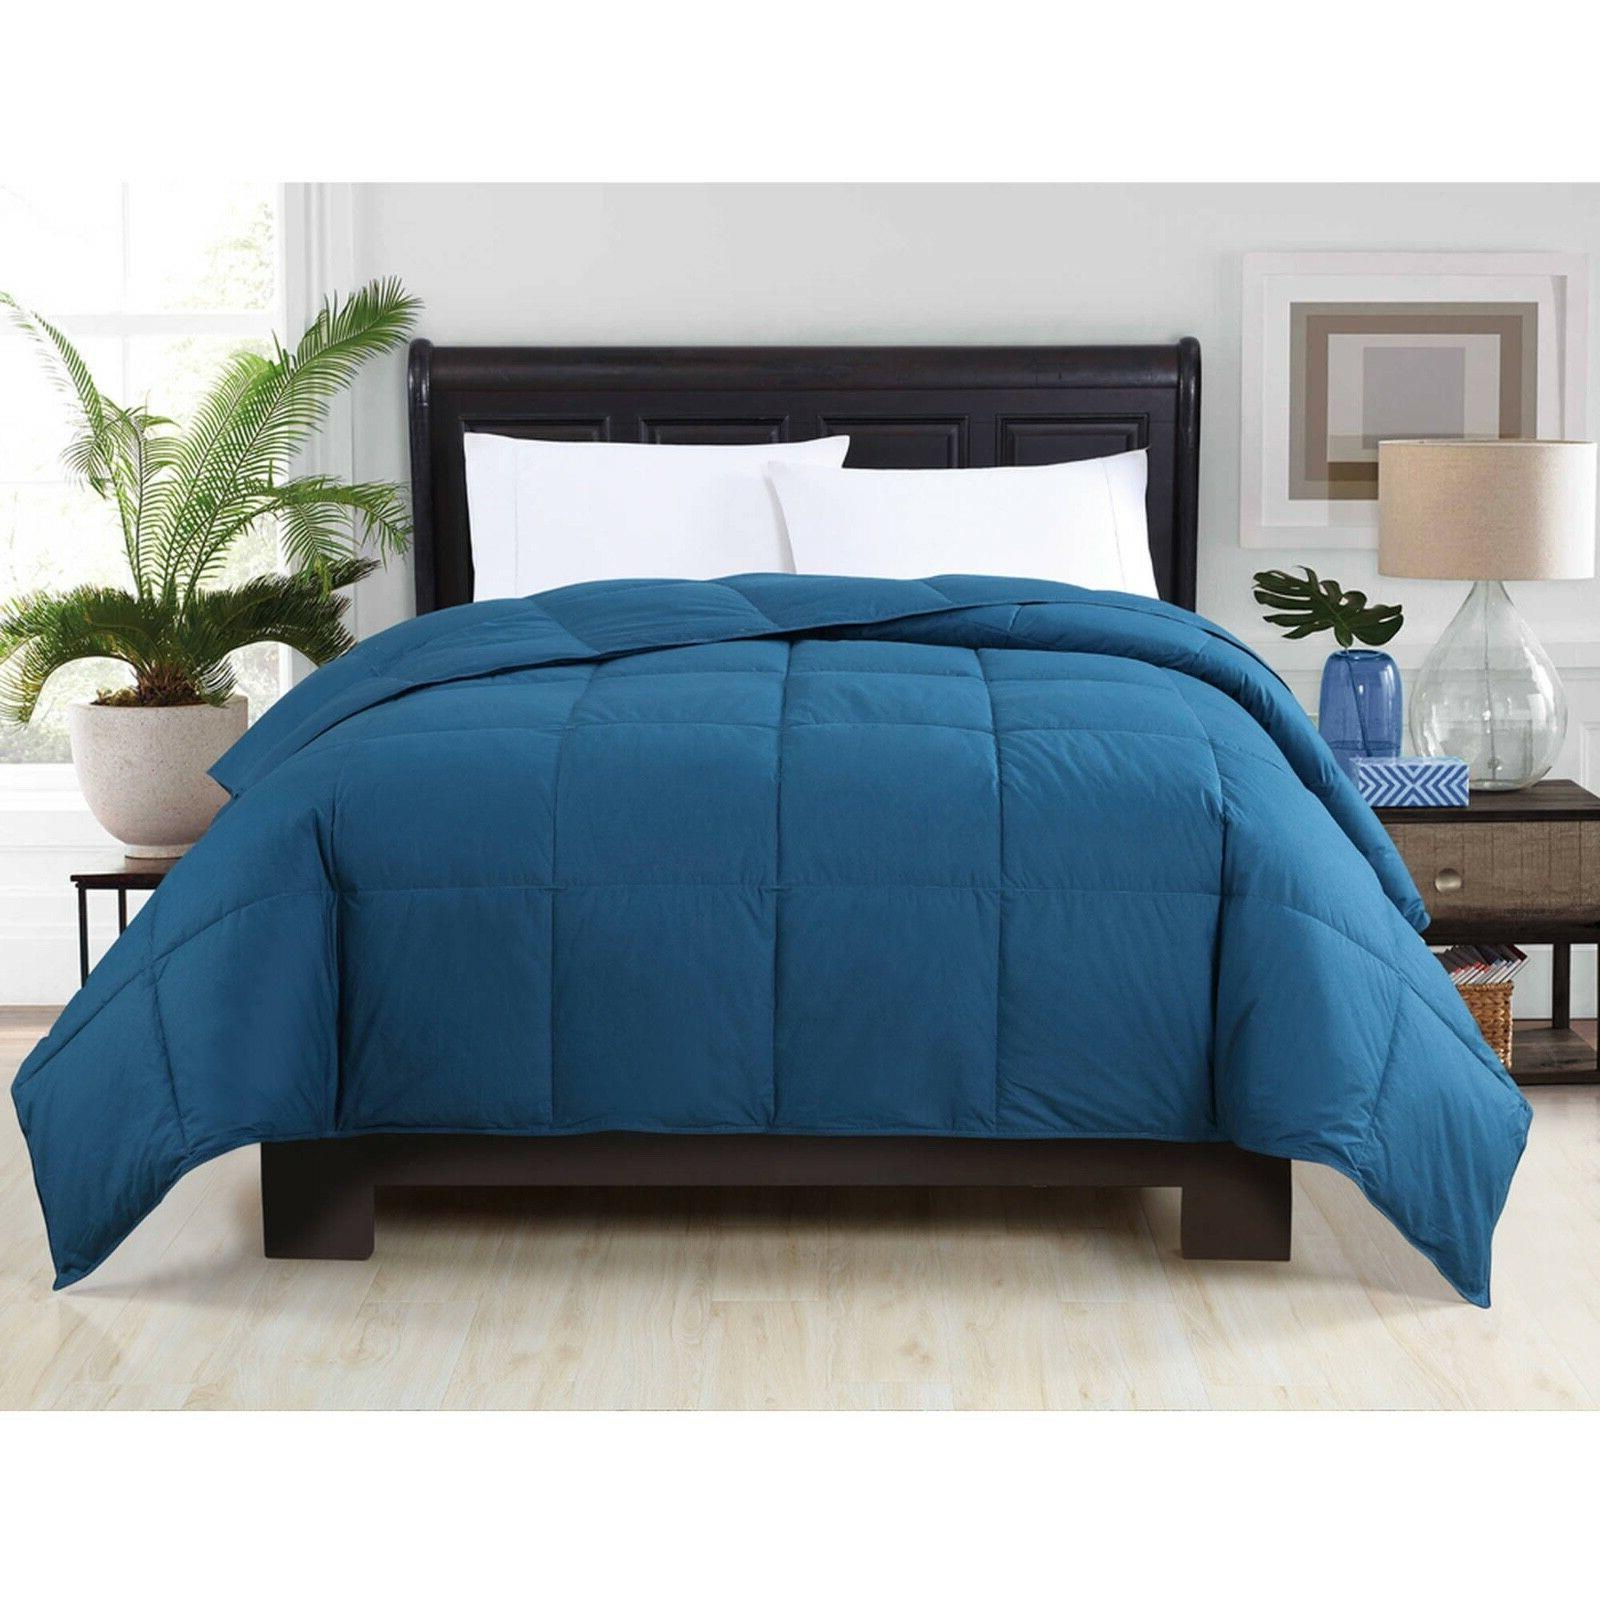 VCNY Box Stitched Comforter Cotton - - TWIN